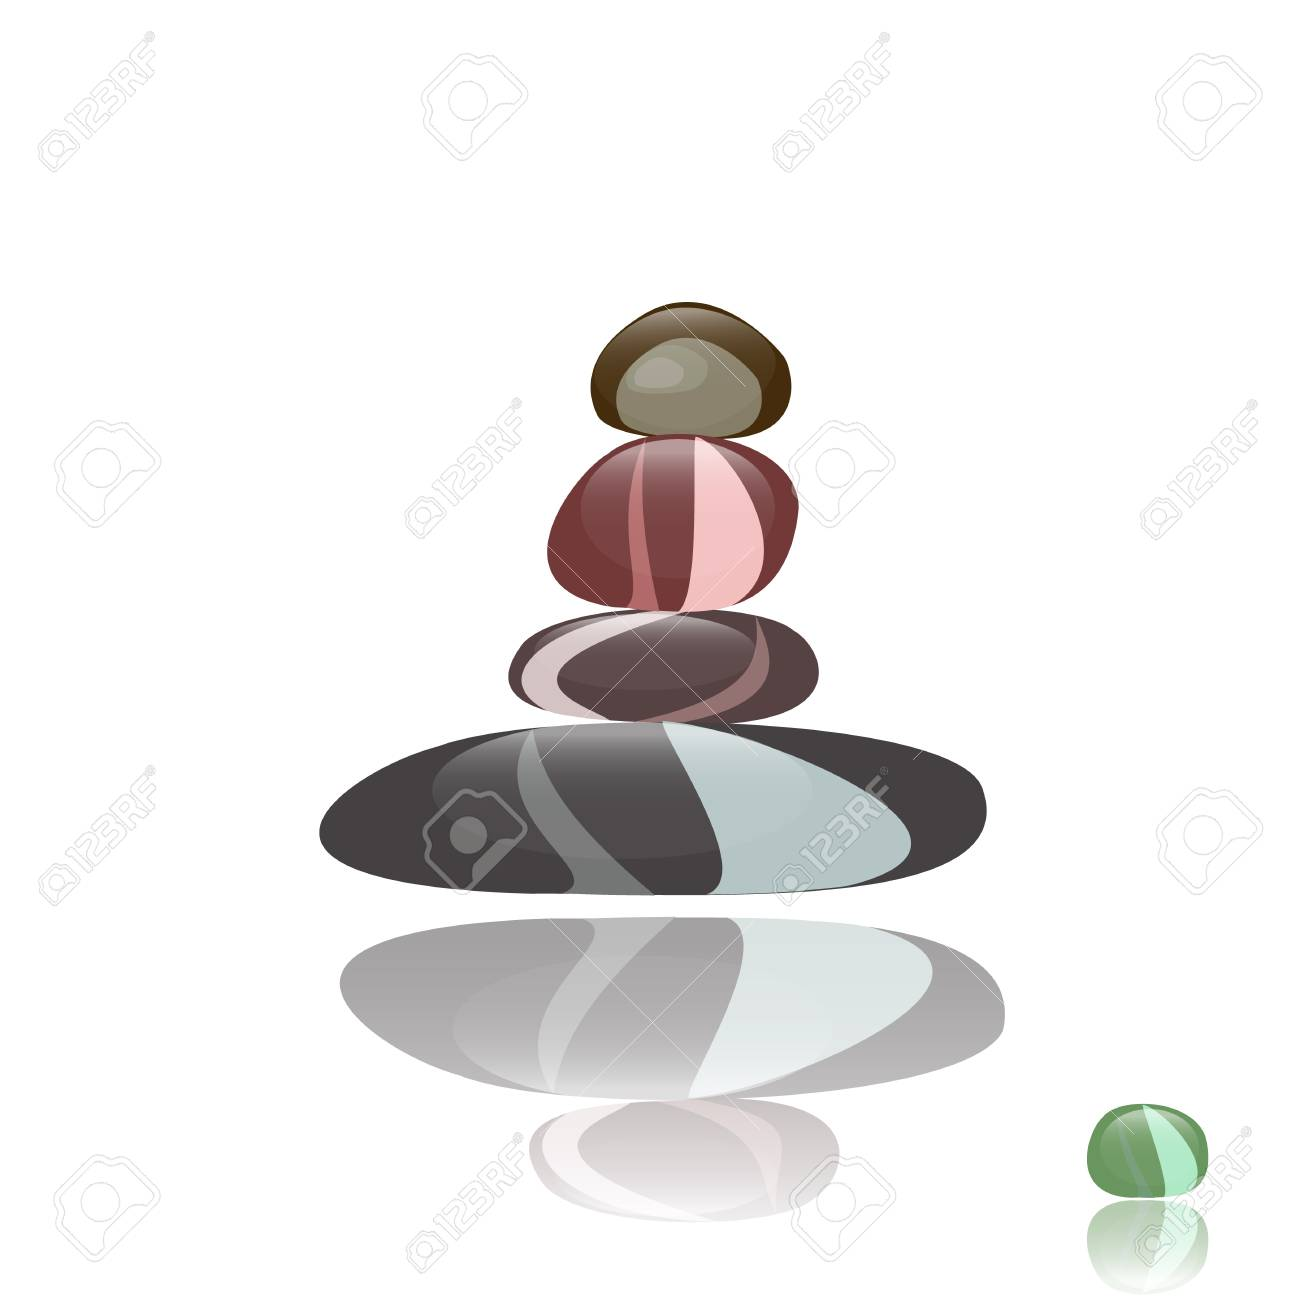 clean shiny stones for a spa Stock Vector - 13401769